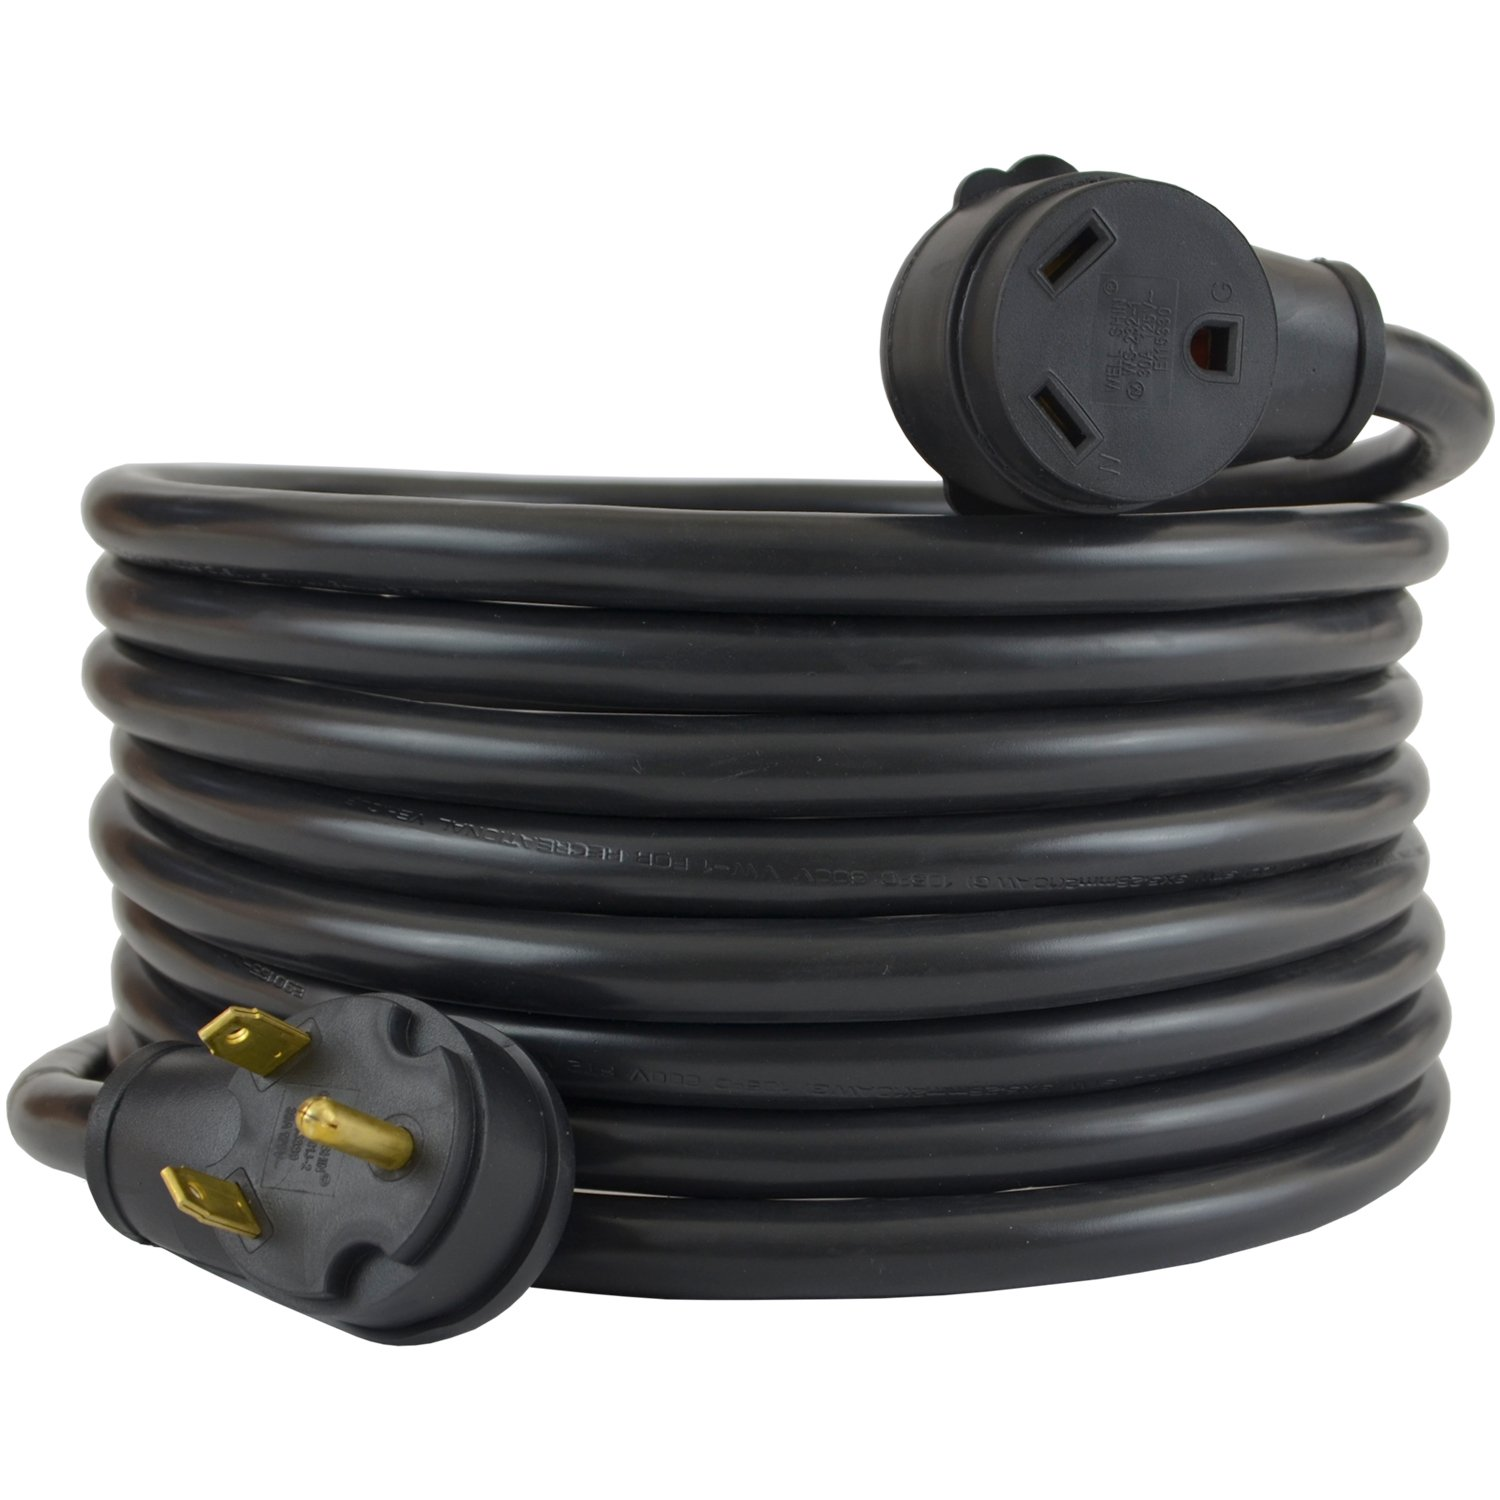 amazon com conntek 15360 30amp rv extension cord, 10 feet, blackamazon com conntek 15360 30amp rv extension cord, 10 feet, black garden \u0026 outdoor